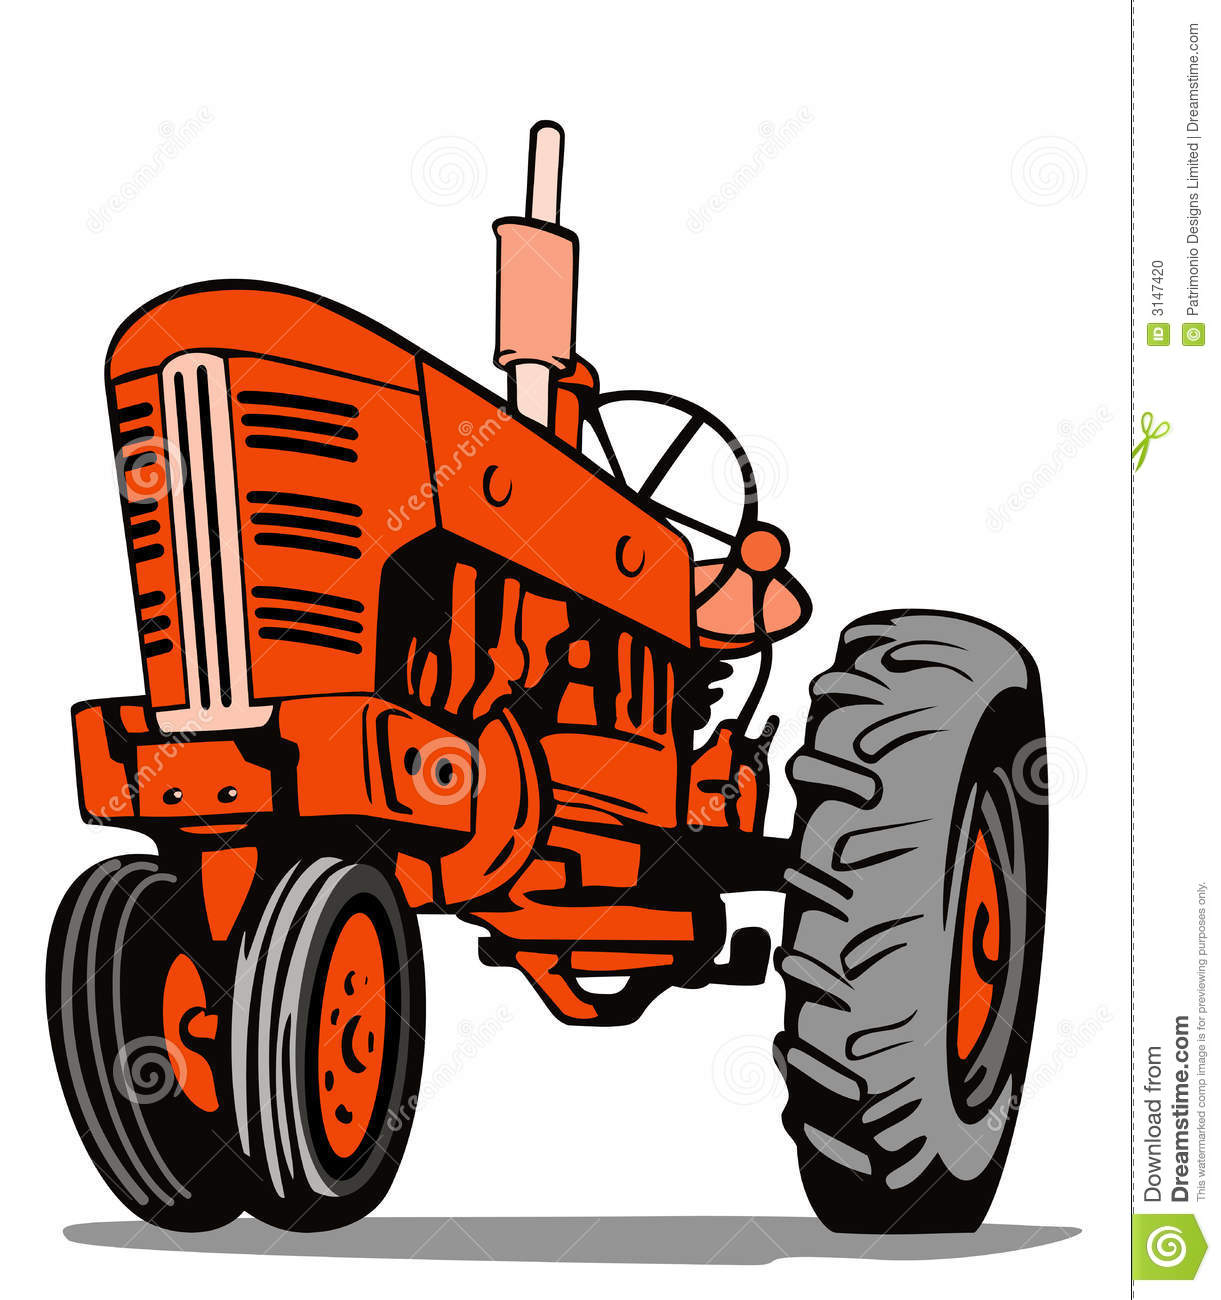 vintage tractor clipart - photo #20